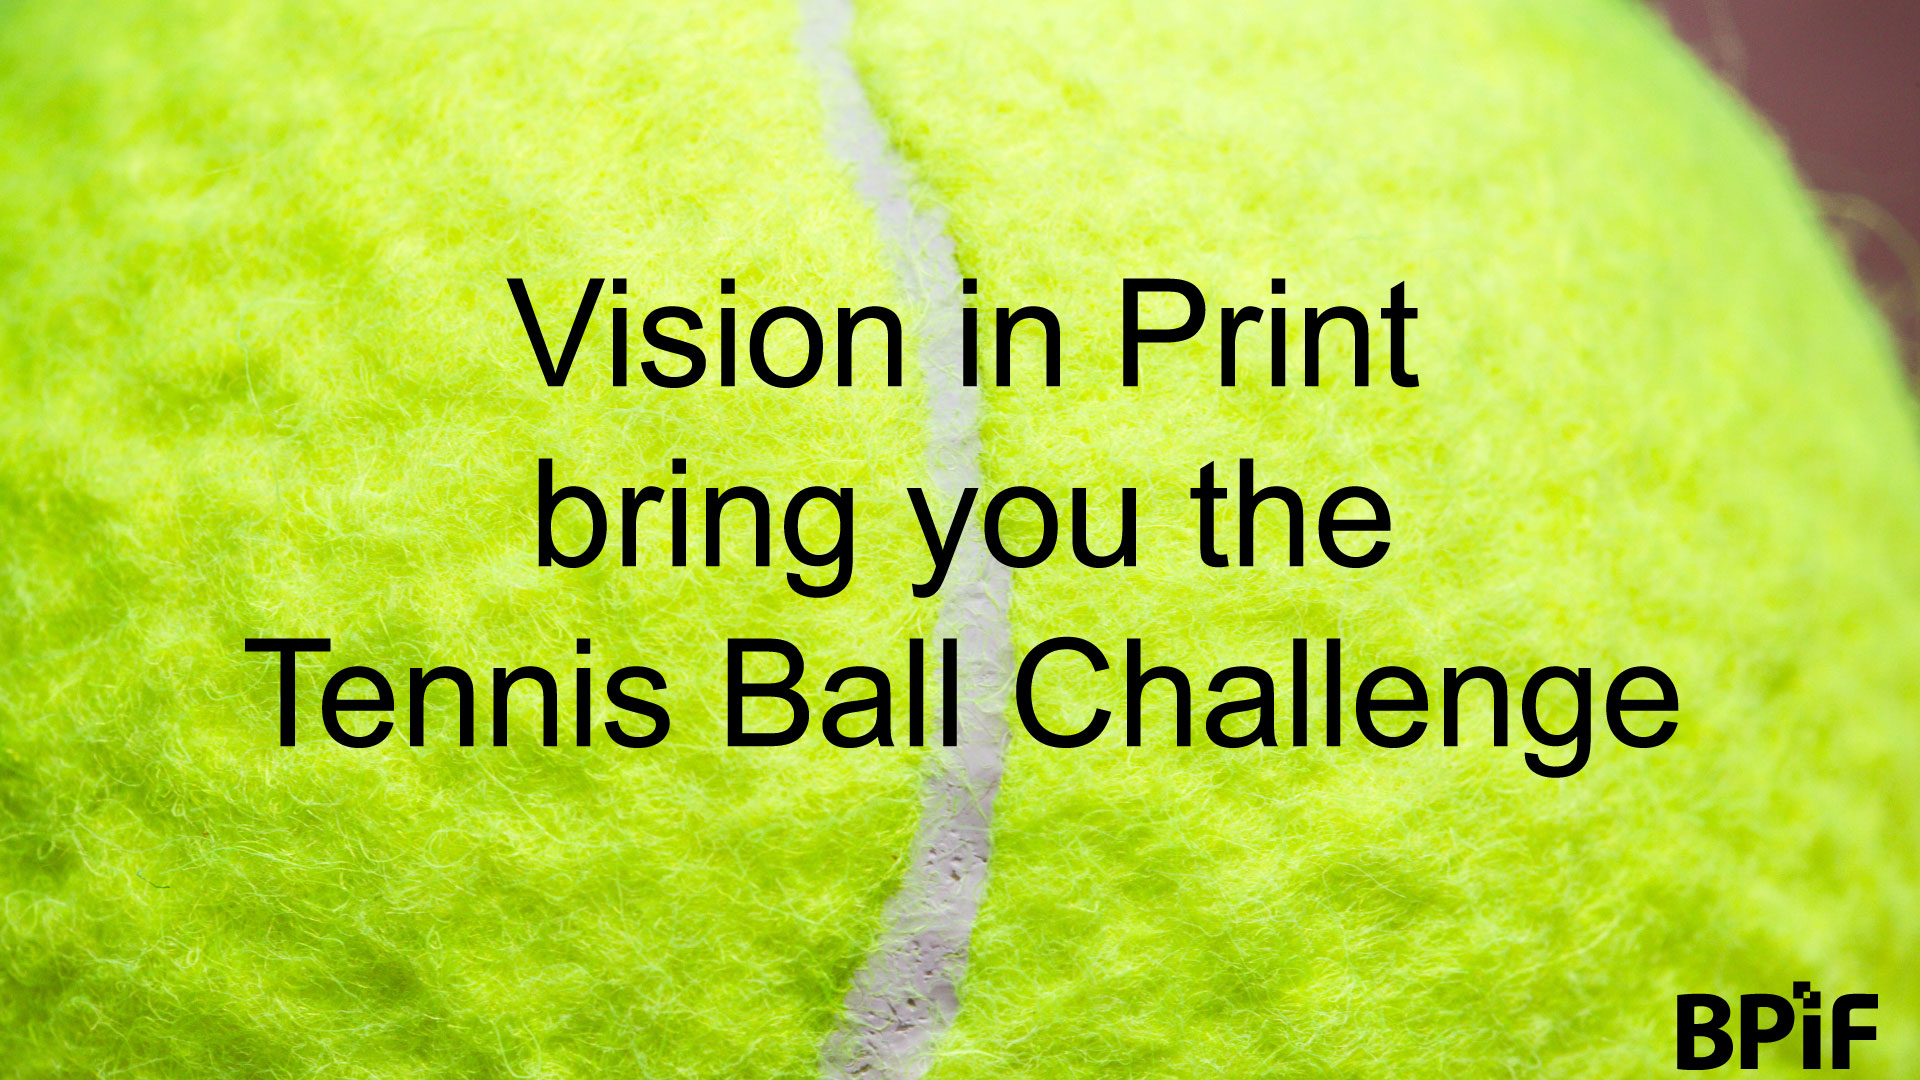 Vision in Print bring you the Tennis Ball Challenge